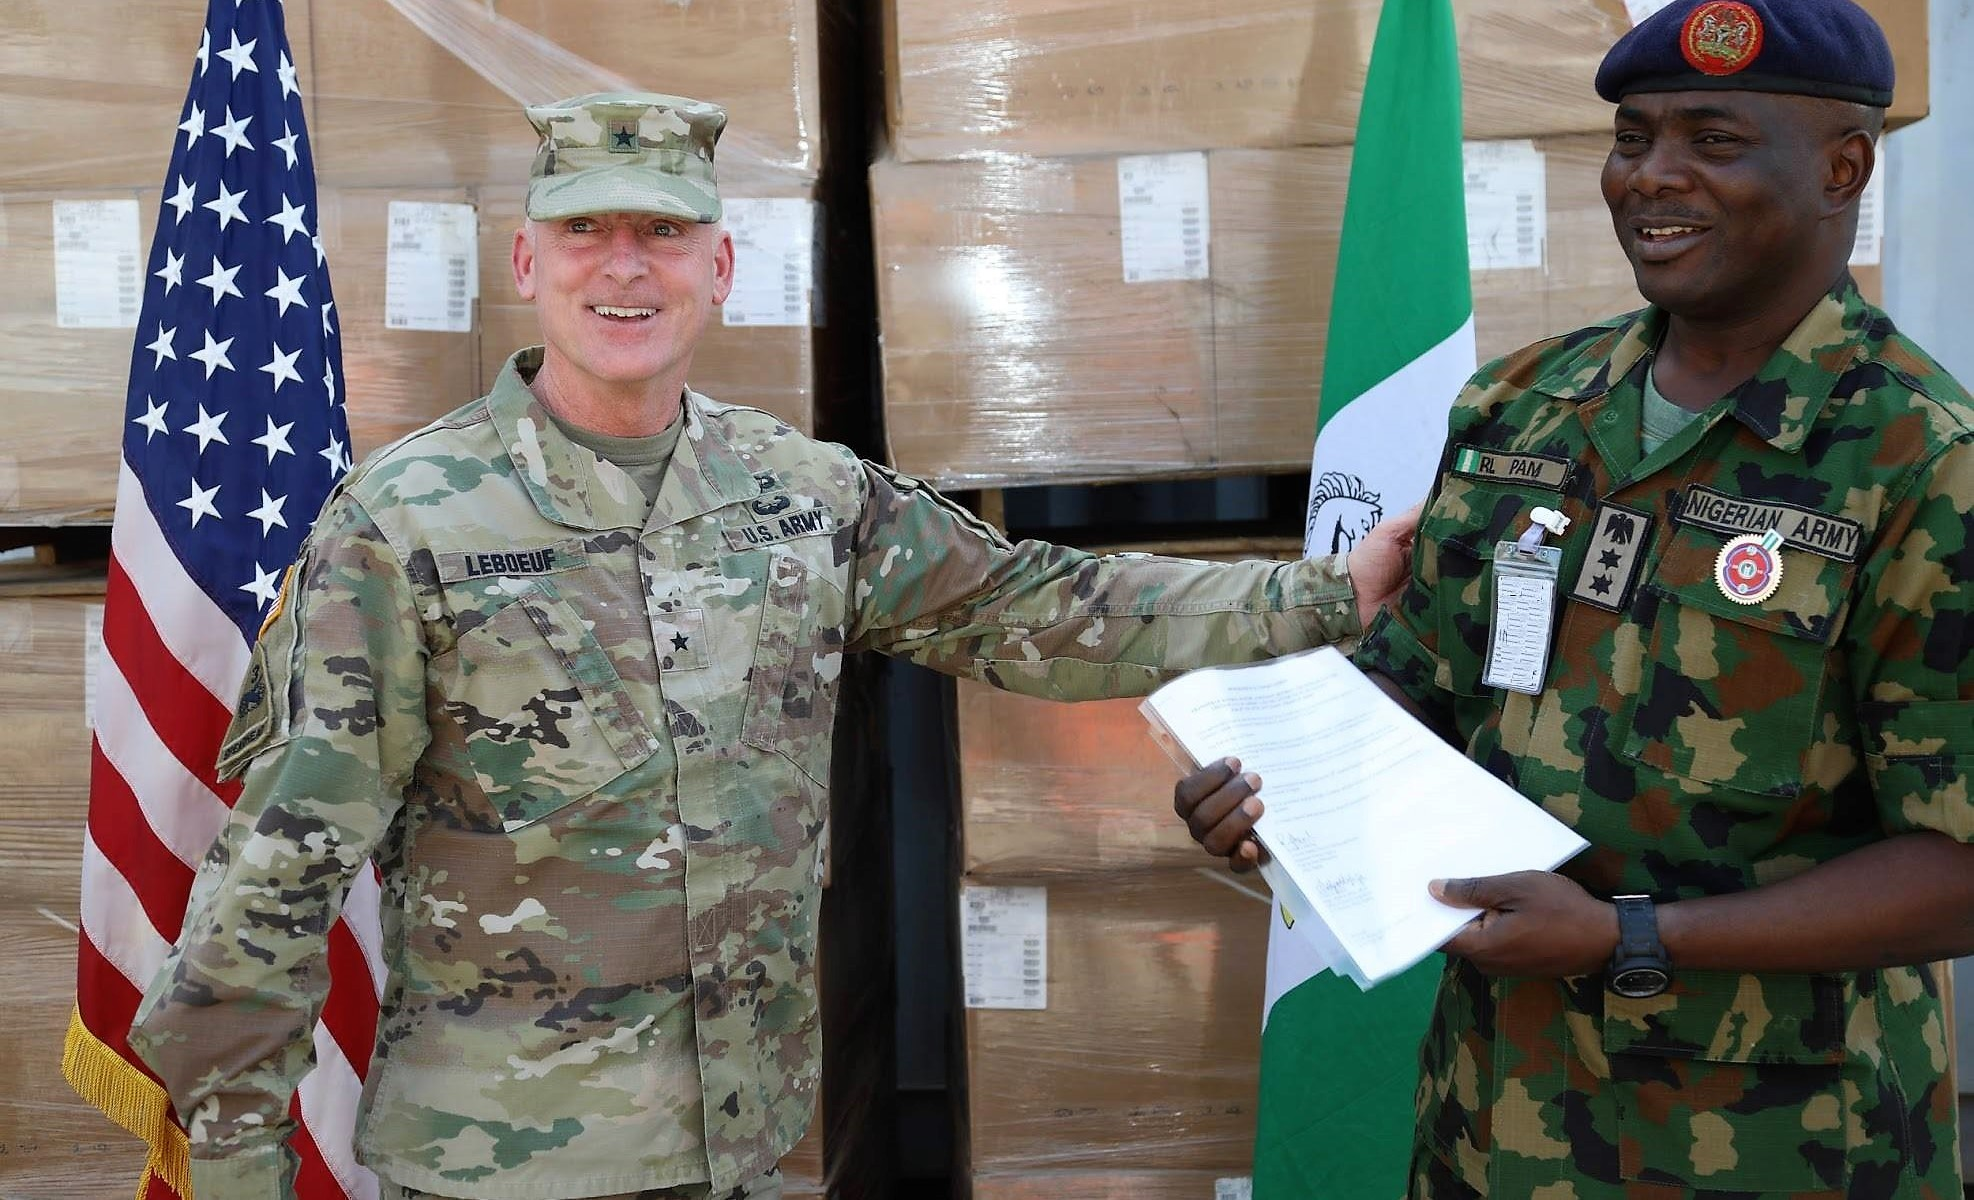 Brig. Gen. Eugene LeBoeuf, the U.S. Army Africa acting commanding general, meets with Col. R.L. Pam during an equipment handover between the U.S. Embassy to Nigeria and Nigeria army's 20th Infantry Battalion in Abuja, Nigeria. A team of Soldiers from U.S. Army Security Assistance Command will deploy to Nigeria in January 2018 to assist in training for the Nigerian army.  (Courtesy photo/U.S. Embassy and Consulate in Nigeria)